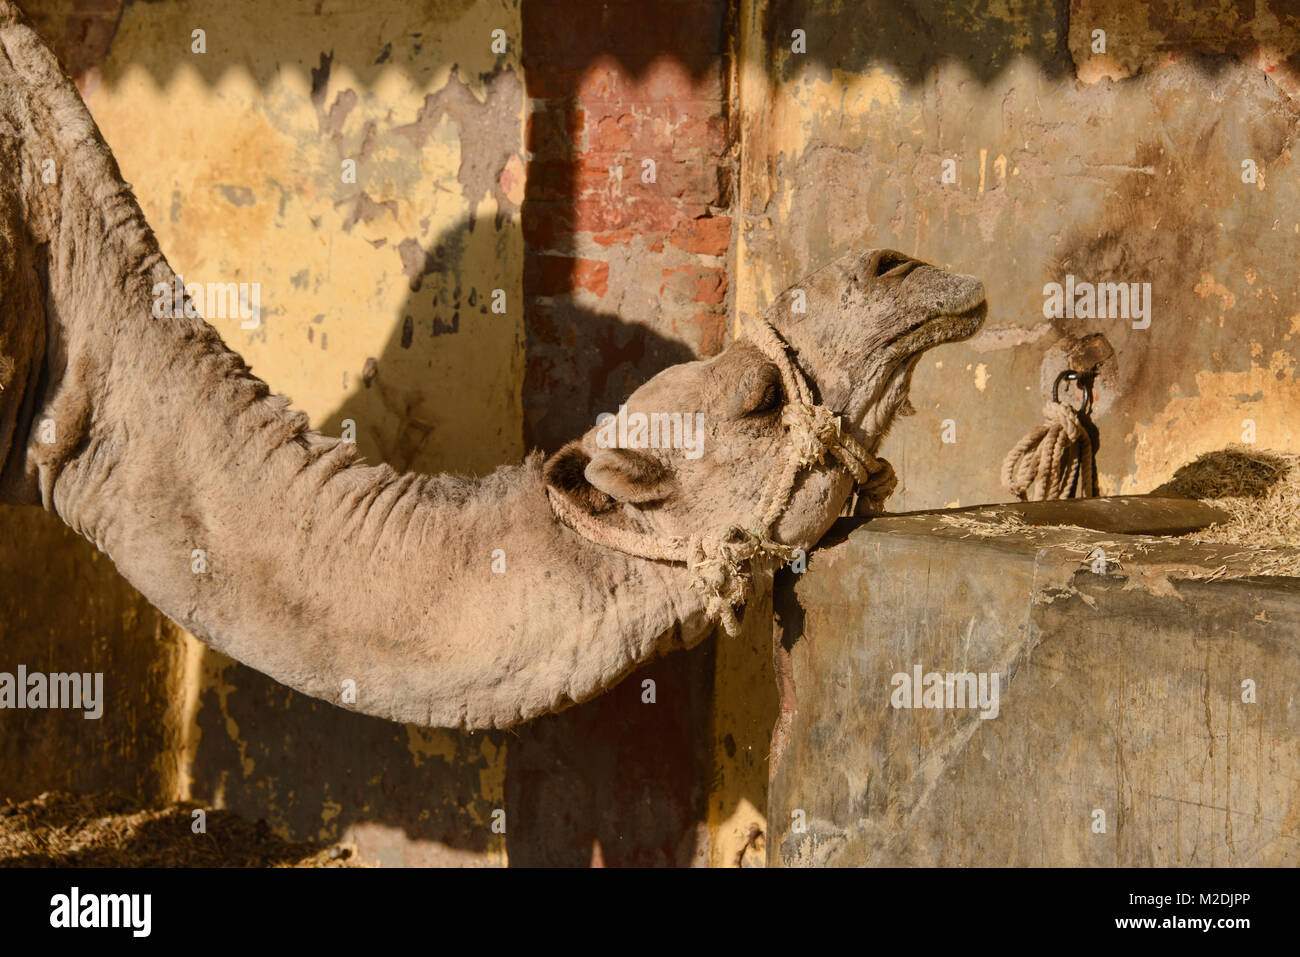 Camels at the Camel Breeding Farm in Bikaner, Rajasthan, India - Stock Image